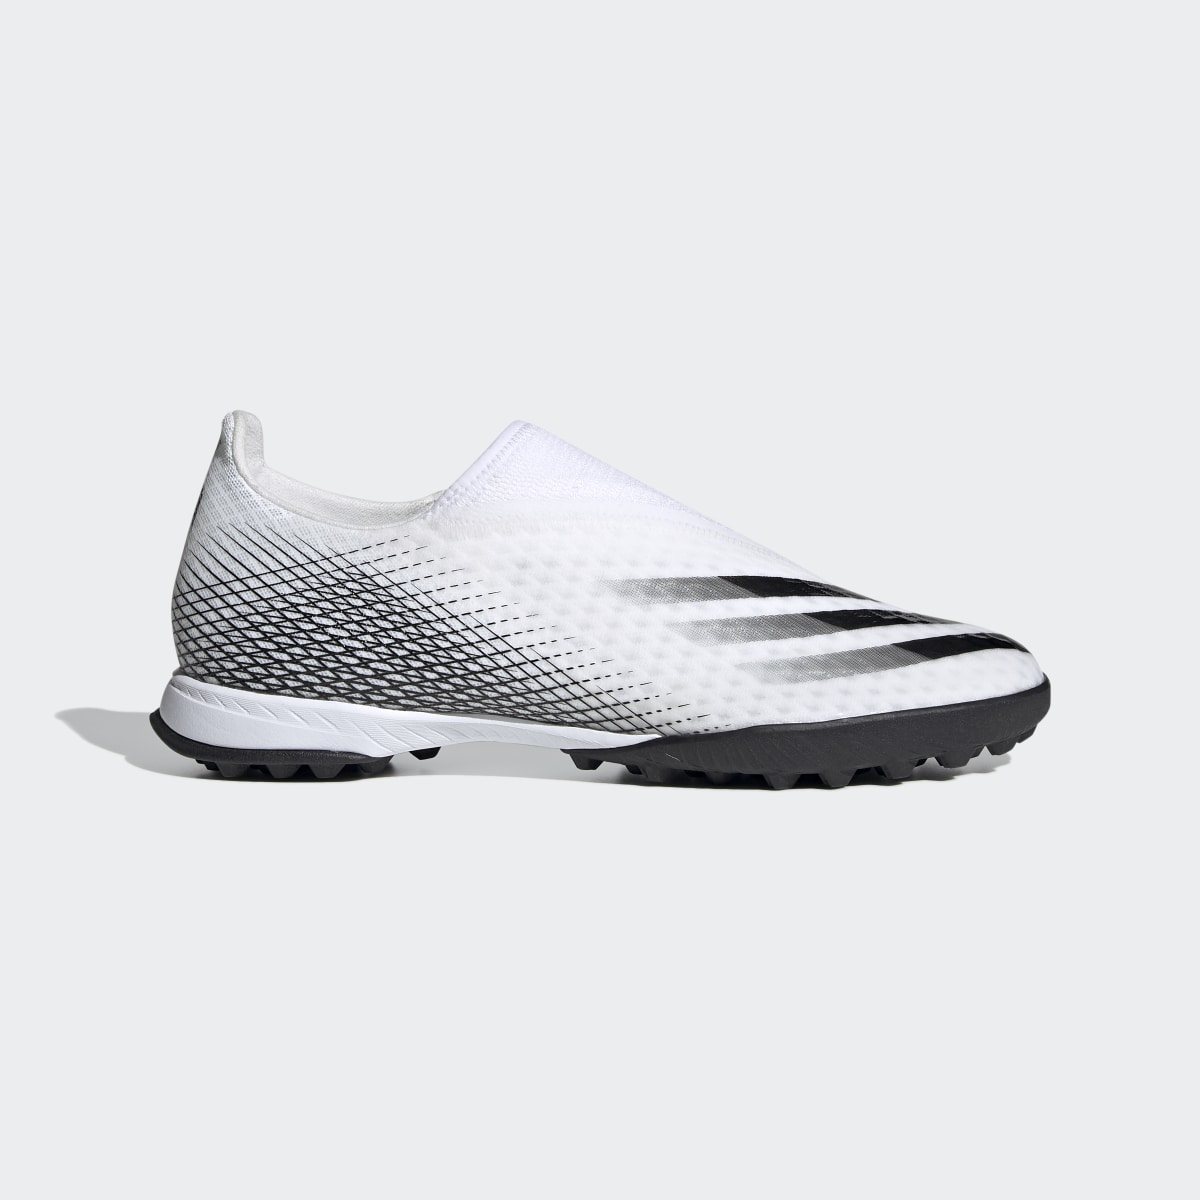 X Ghosted.3 Laceless Turf Cleats